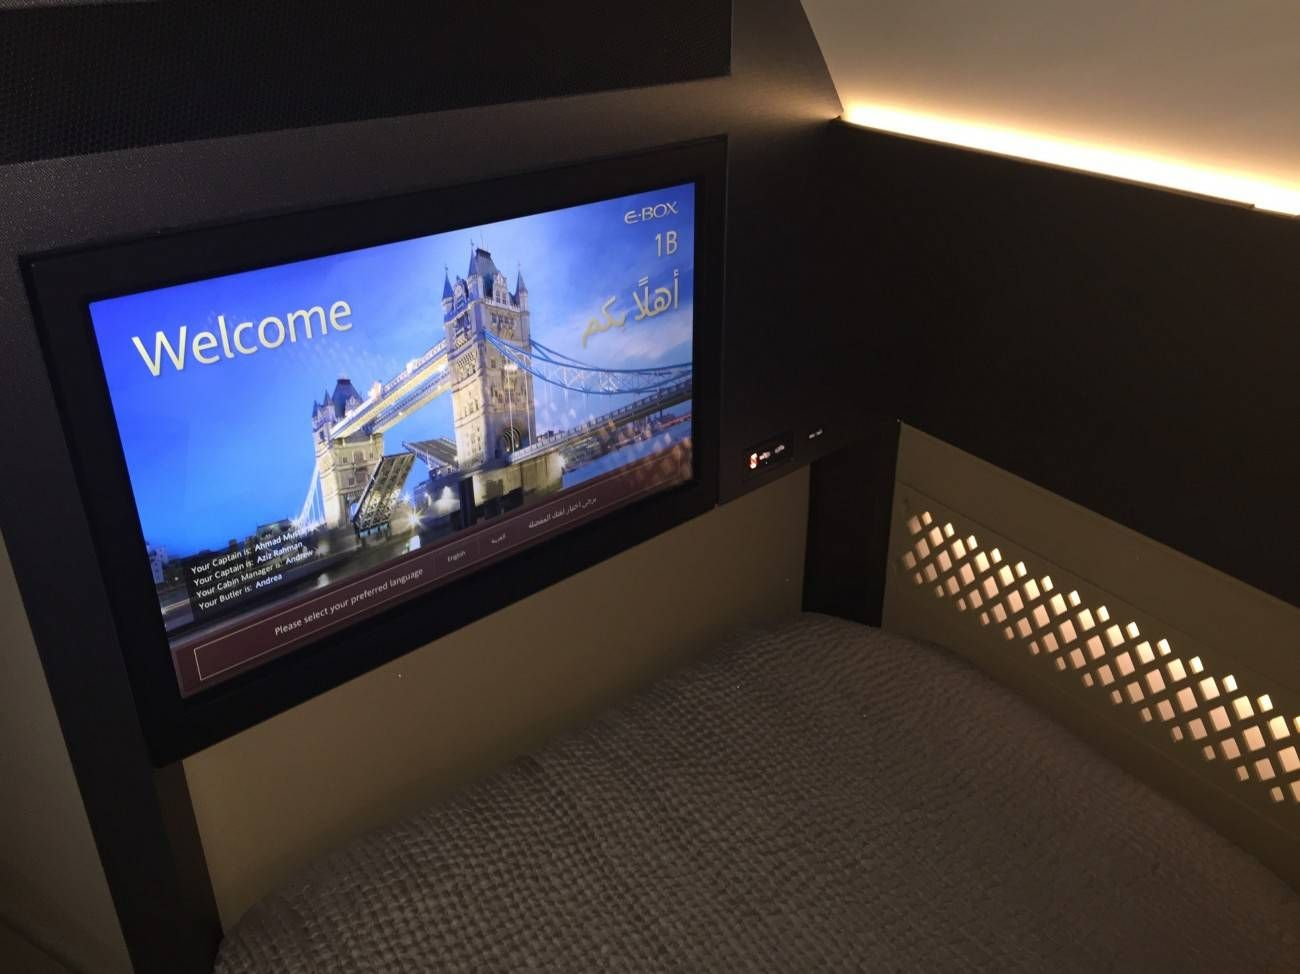 First Class Apartment A380 Etihad - PassageirodePrimeira38